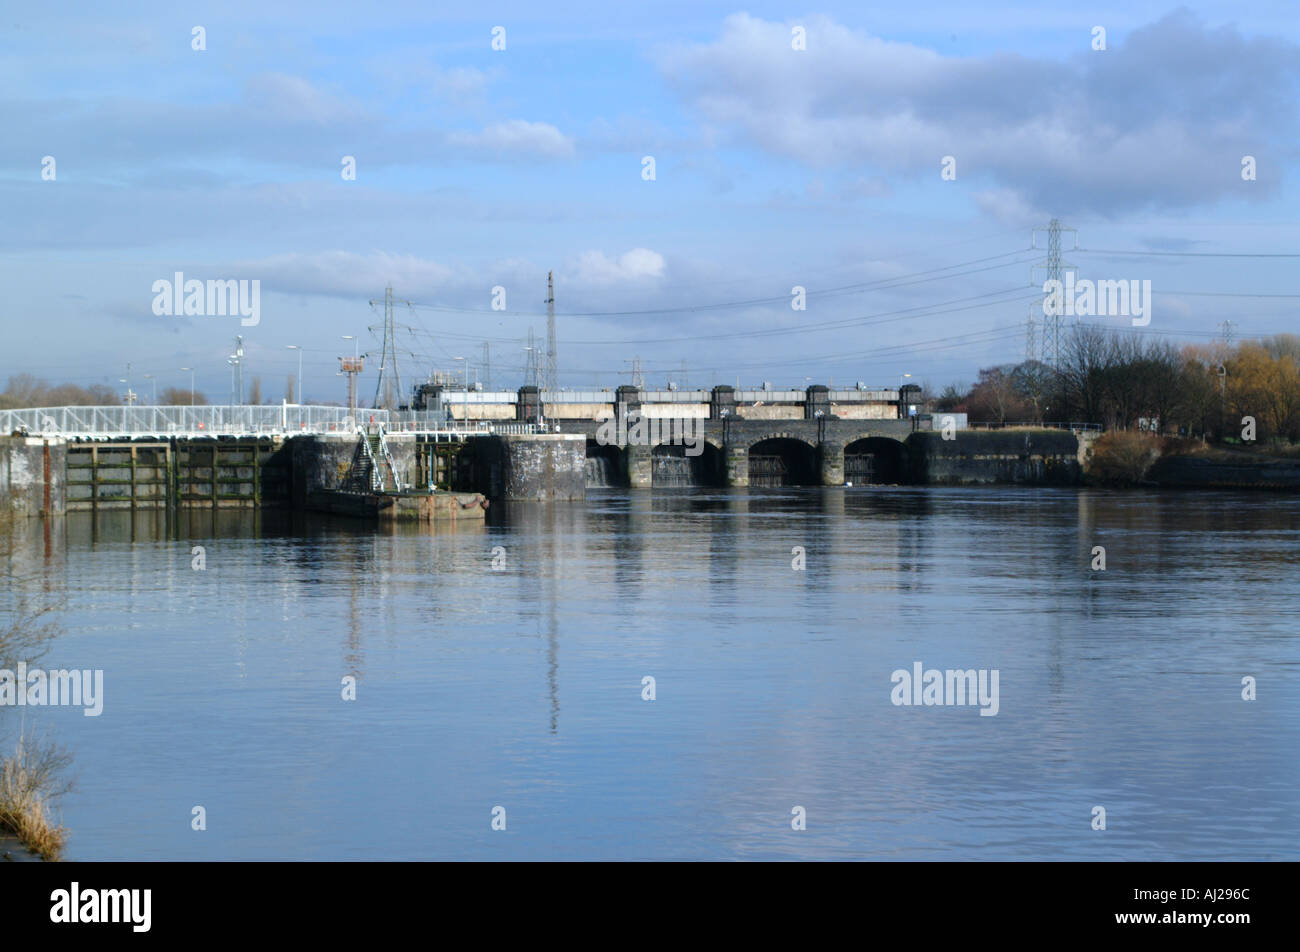 irlam locks along a stretch of the manchester ship canal england uk - Stock Image